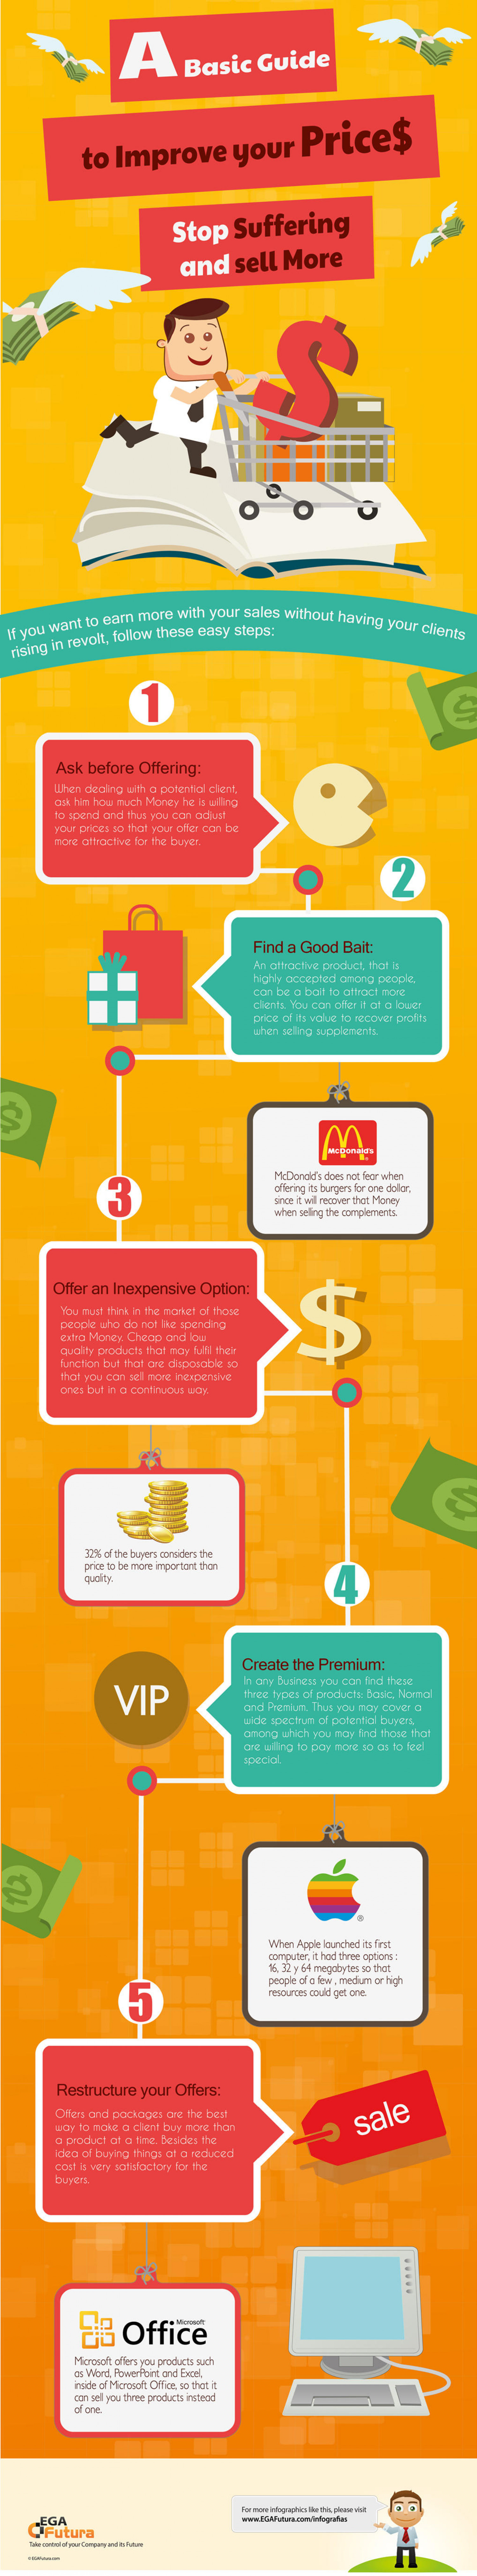 A Basic Guide to Improve your Prices, Stop Suffering and Sell More Infographic